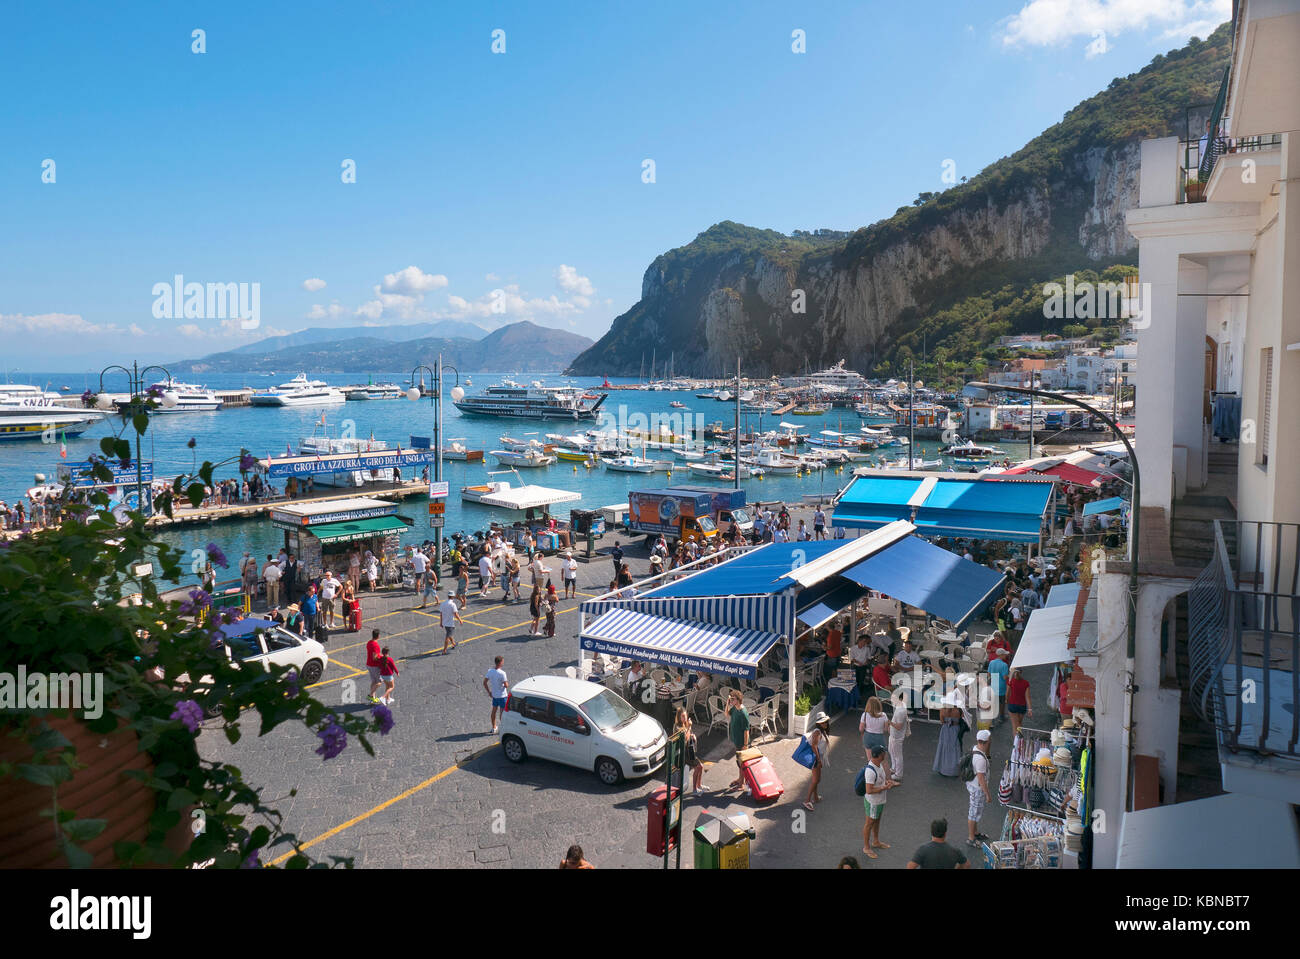 The Harbour at Capri in  Italy. - Stock Image